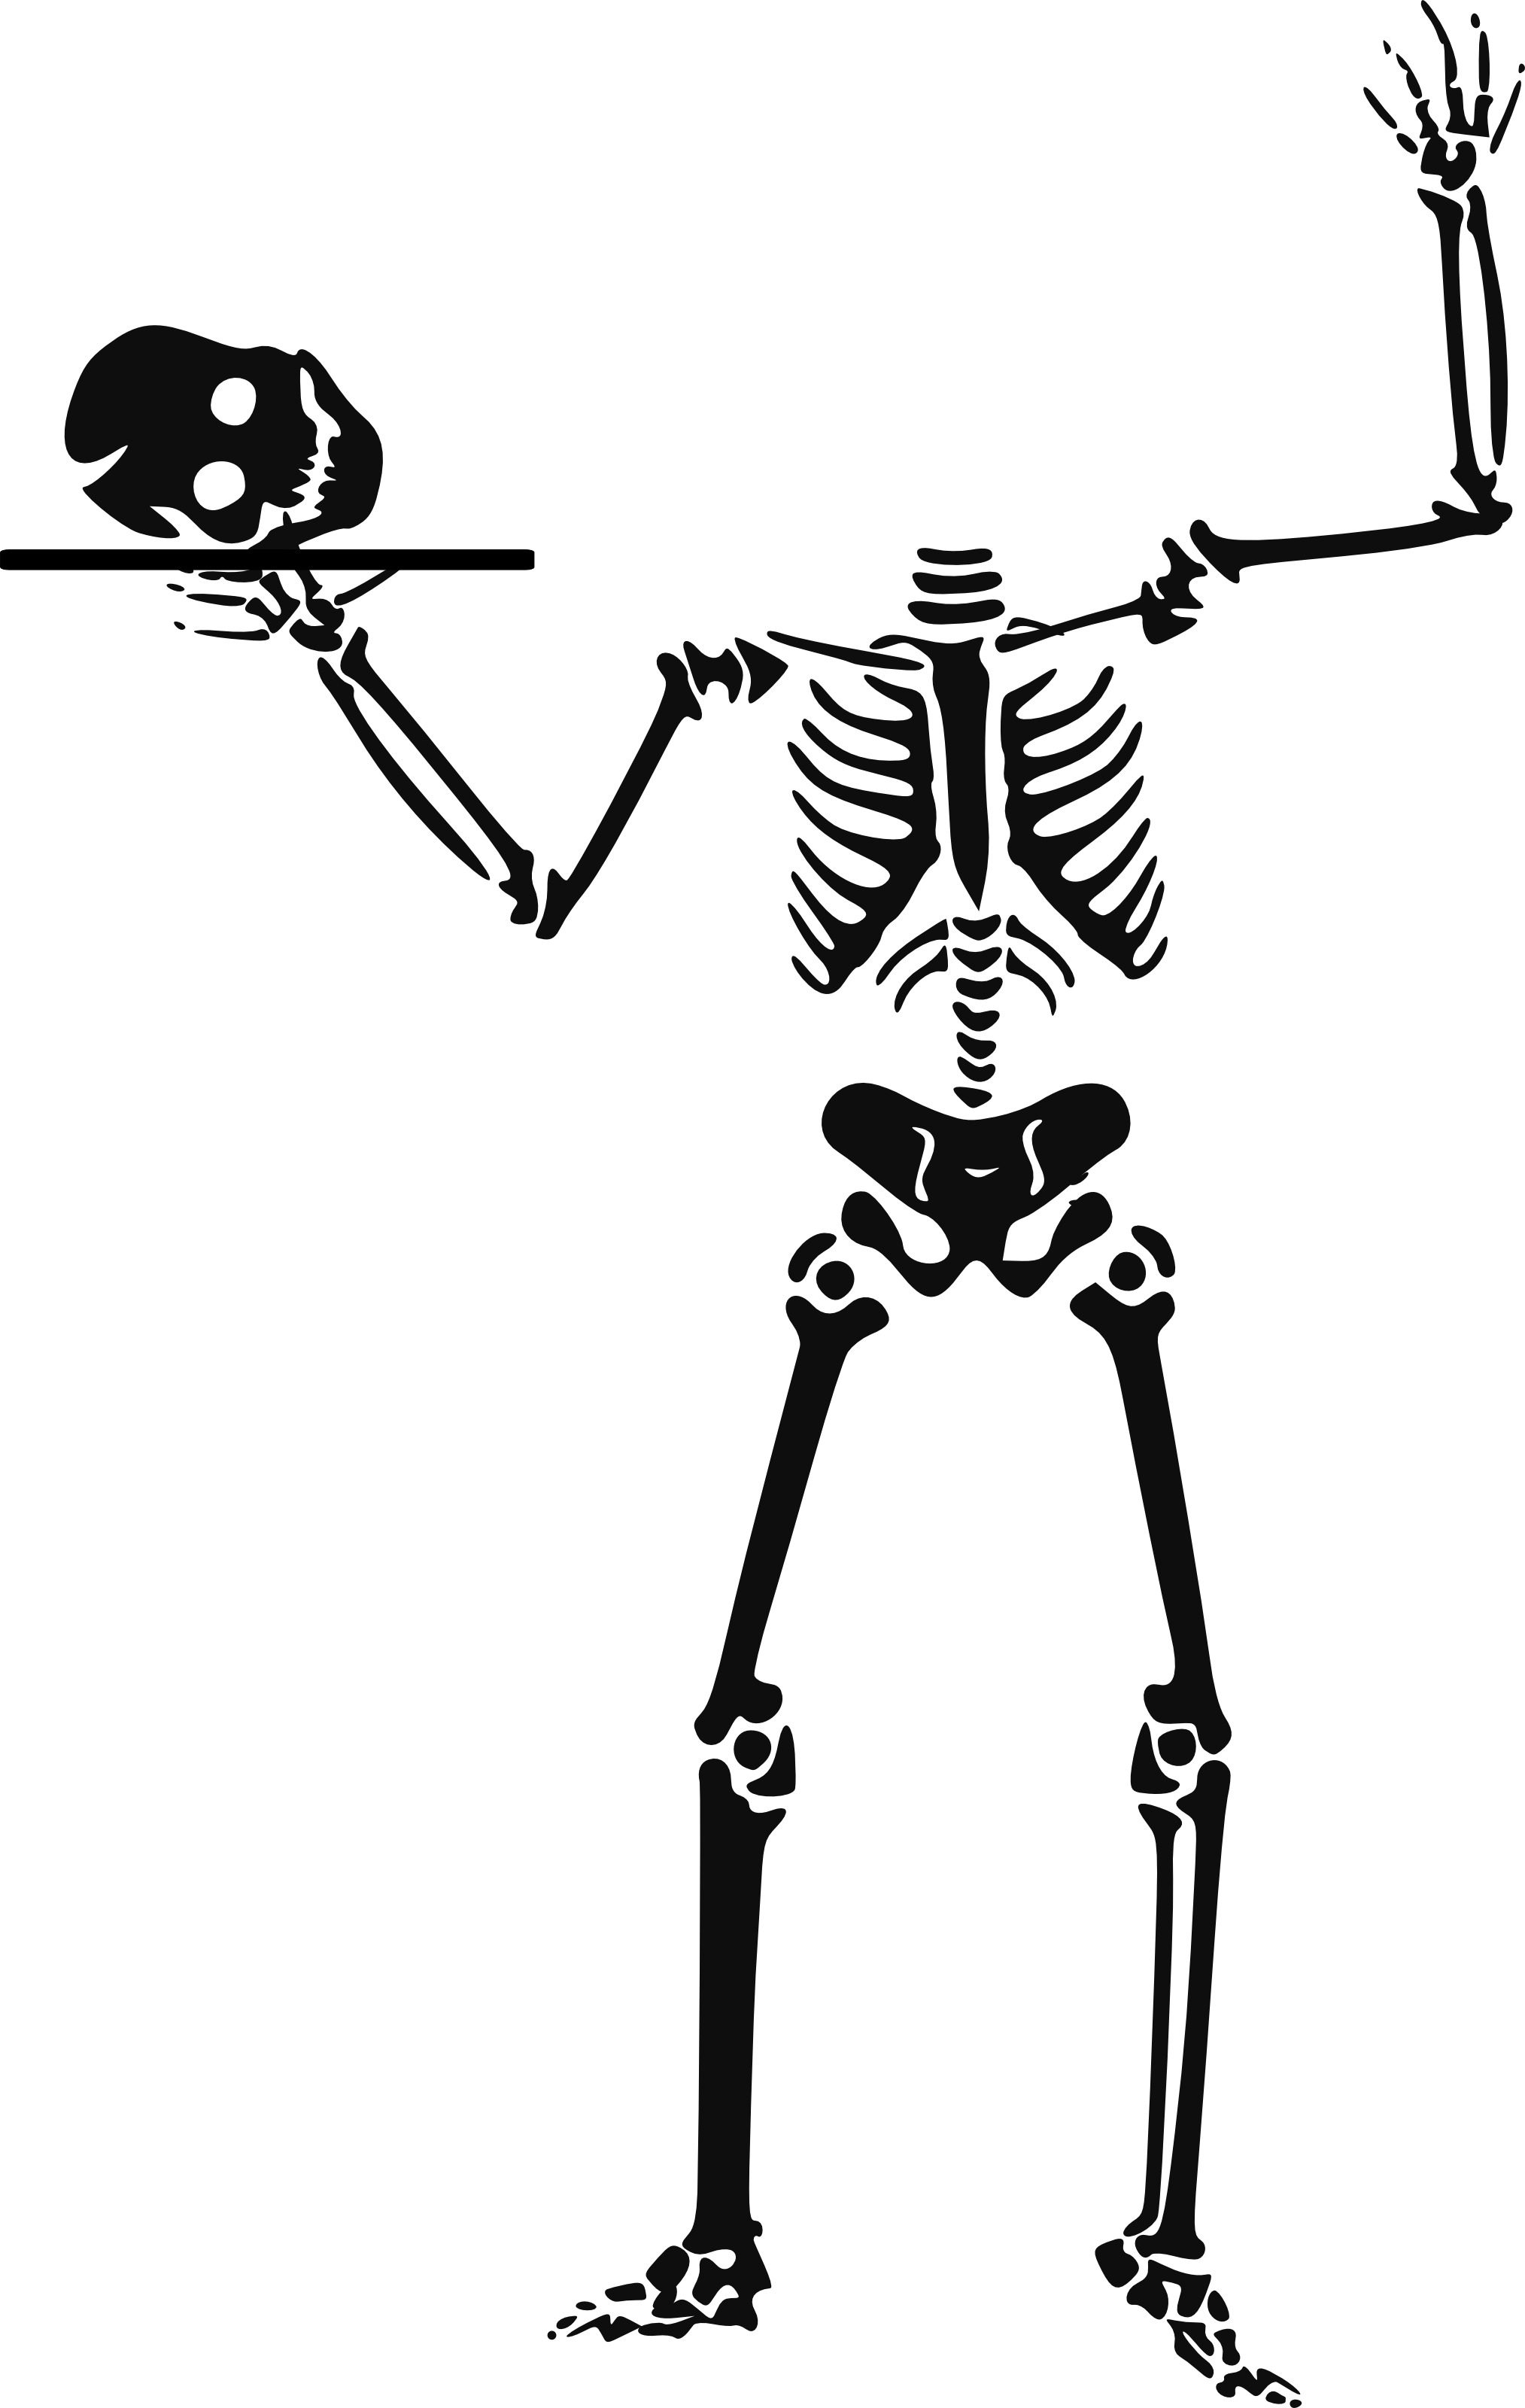 Halloween skeleton pictures clipart graphic library Halloween Skeleton Clipart | Clipart Panda - Free Clipart Images graphic library